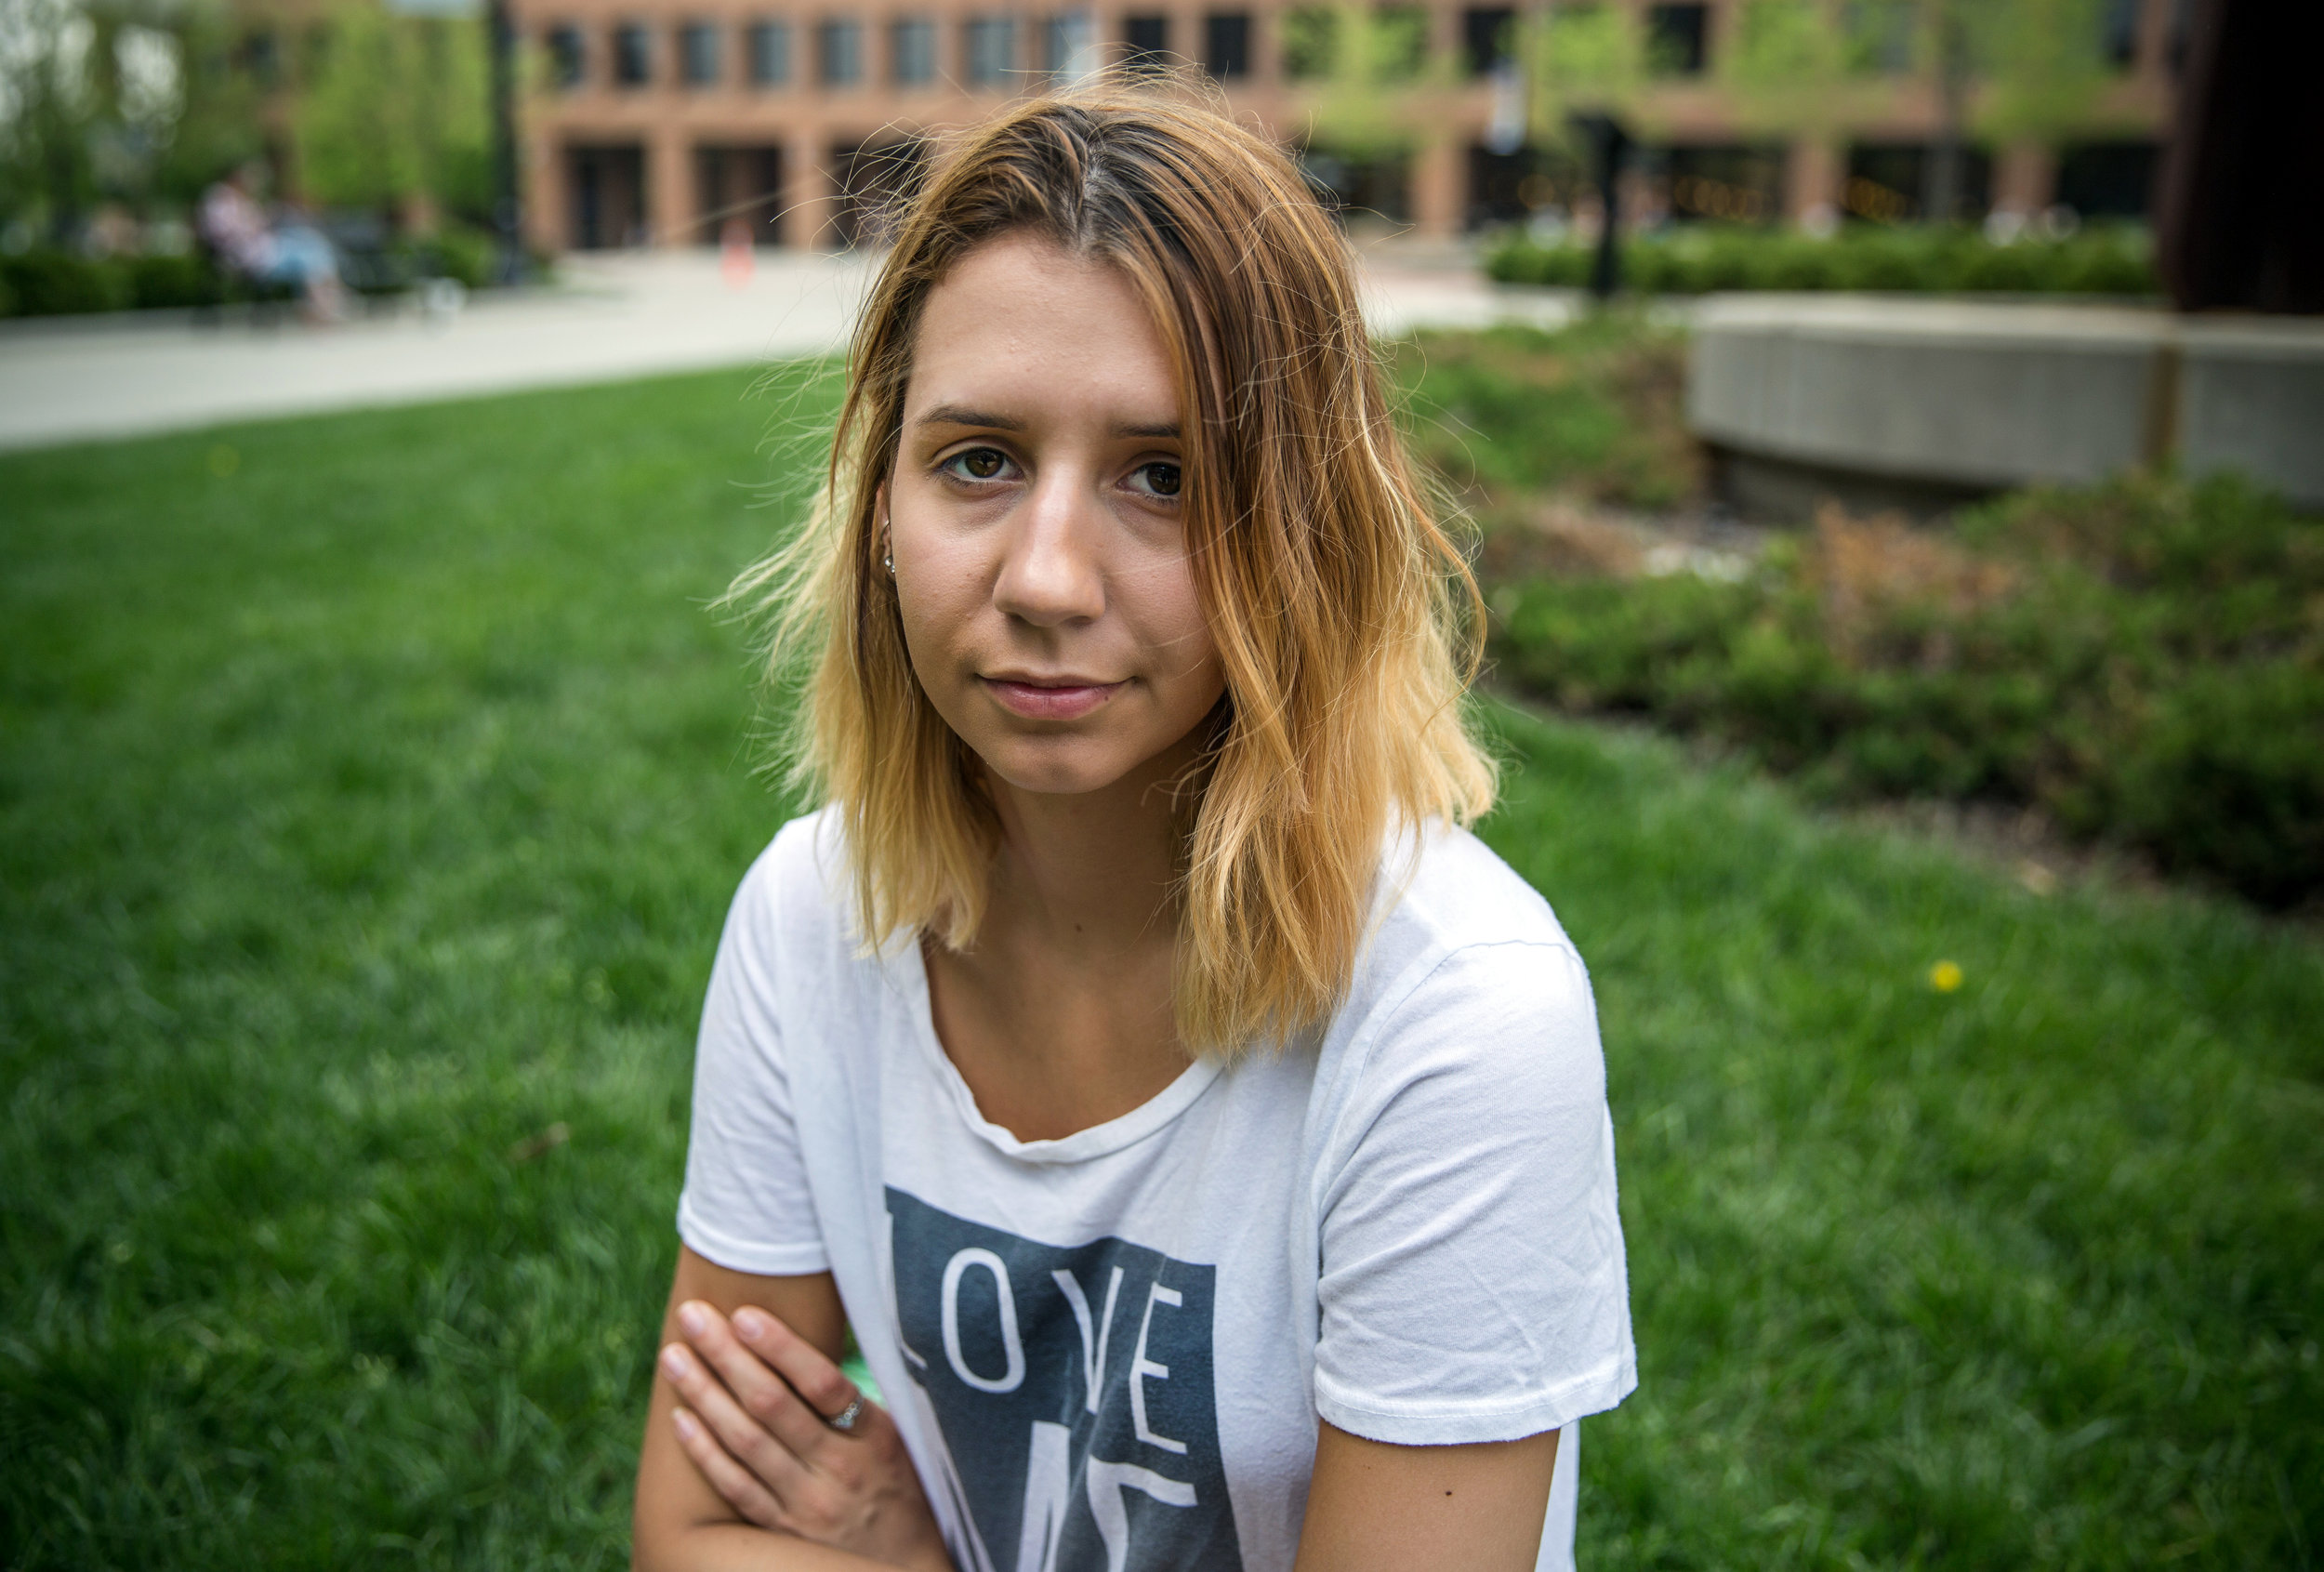 Katie MacPherson, 20, on campus at Kent State University in Ohio, was heading out with friends to a concert one evening when one of them attacked her in a car.